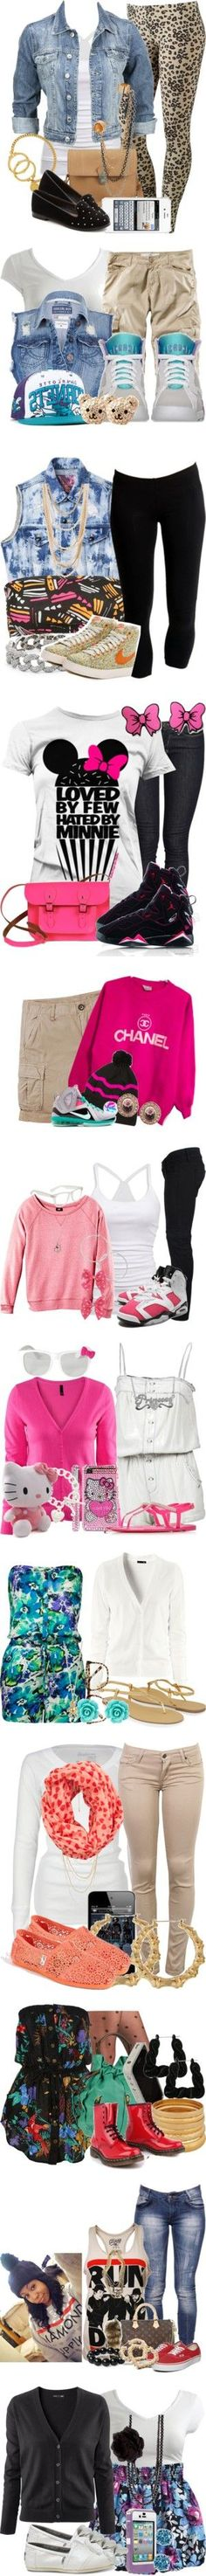 """Swagg Center .. Part 2"" by imsimplyyme ❤ liked on Polyvore"